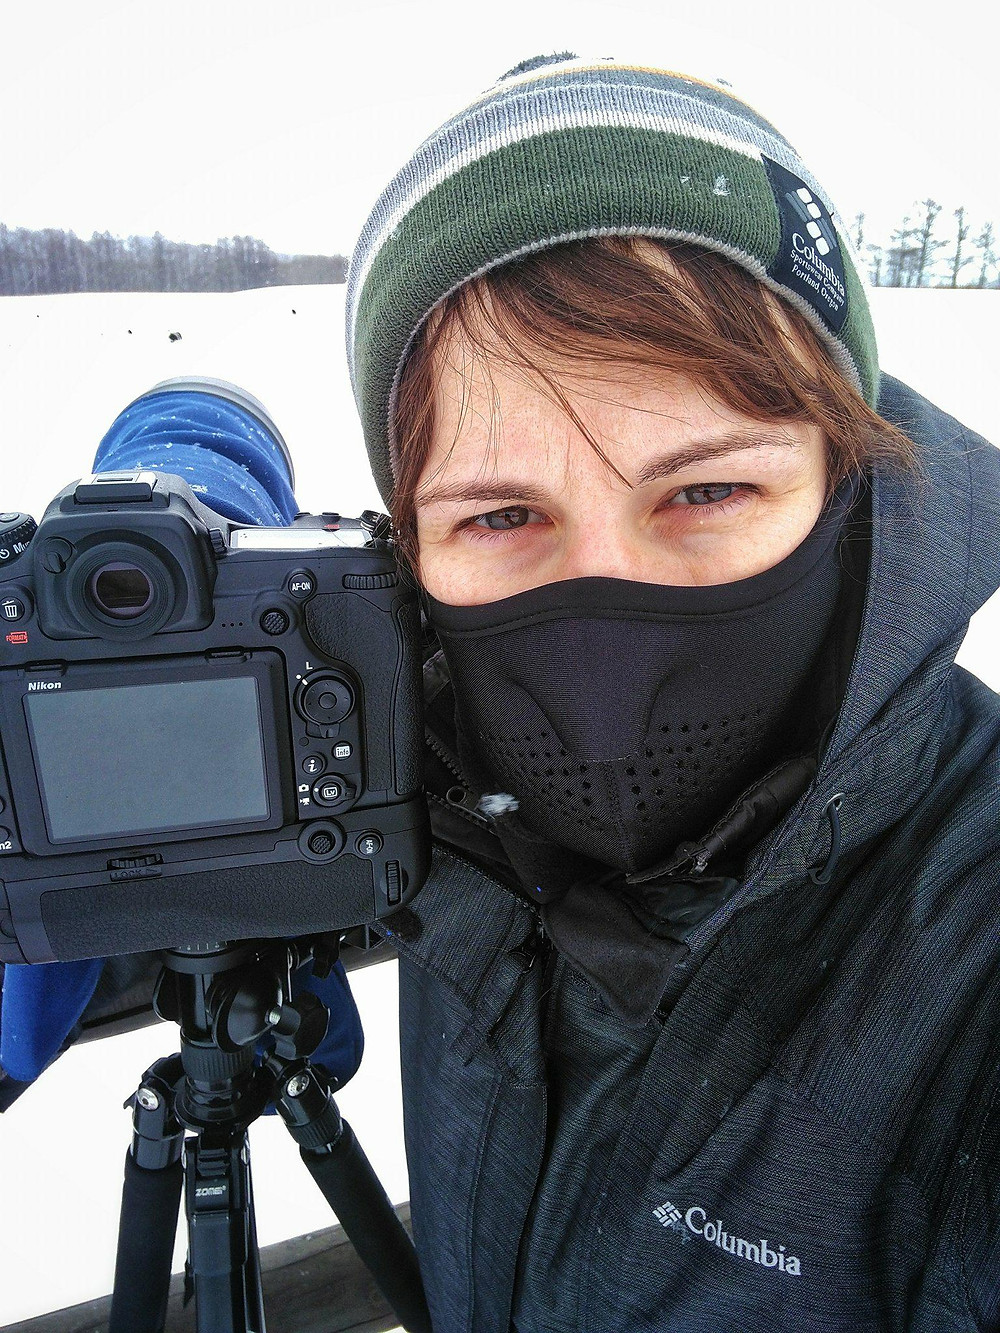 Me with my camera gear at the crane fields